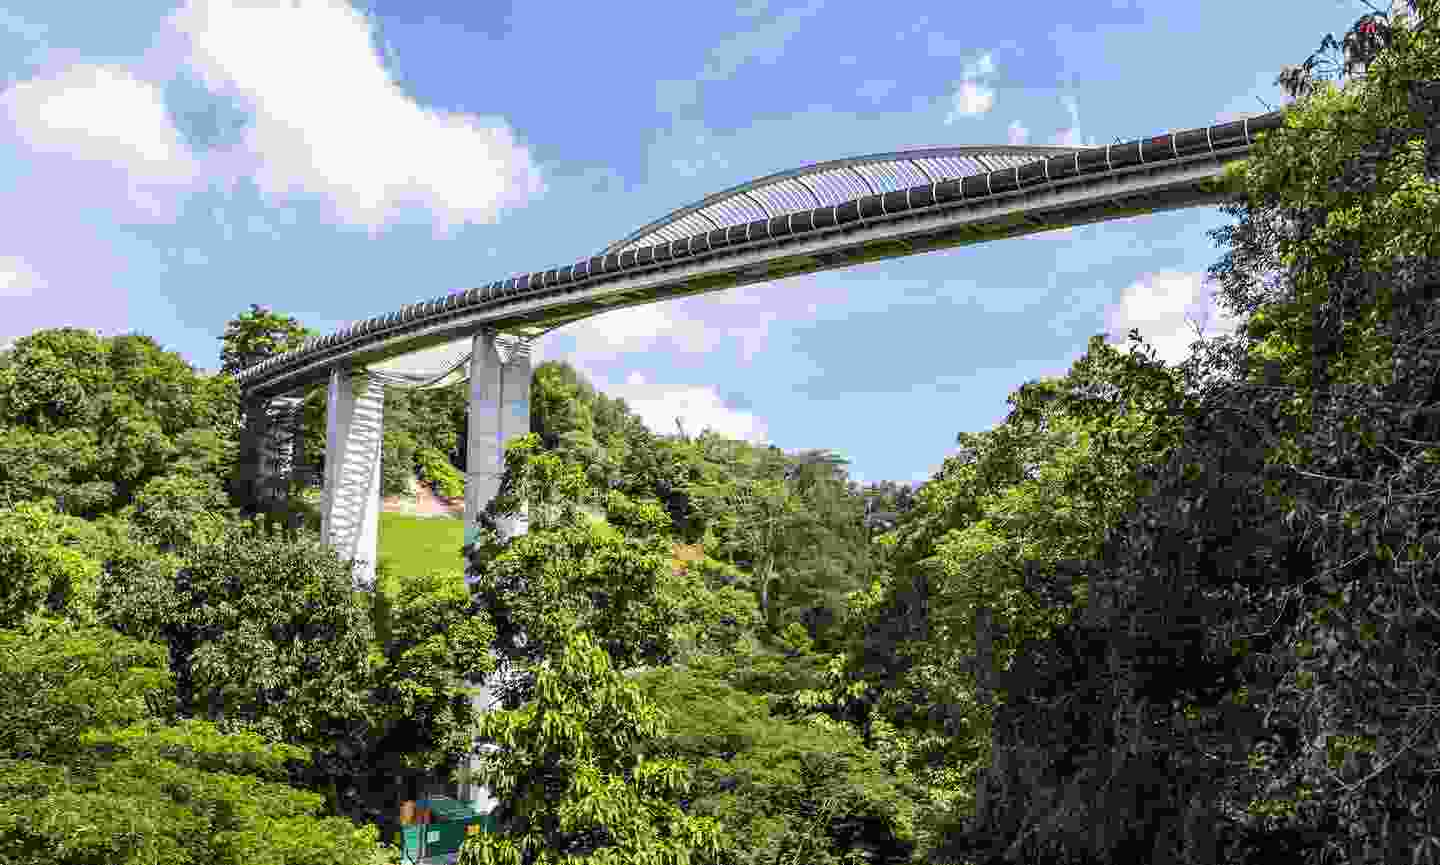 Henderson Waves is not only the tallest pedestrian bridge making up Southern Ridges, but also the highest of its kind in Singapore (Shutterstock)